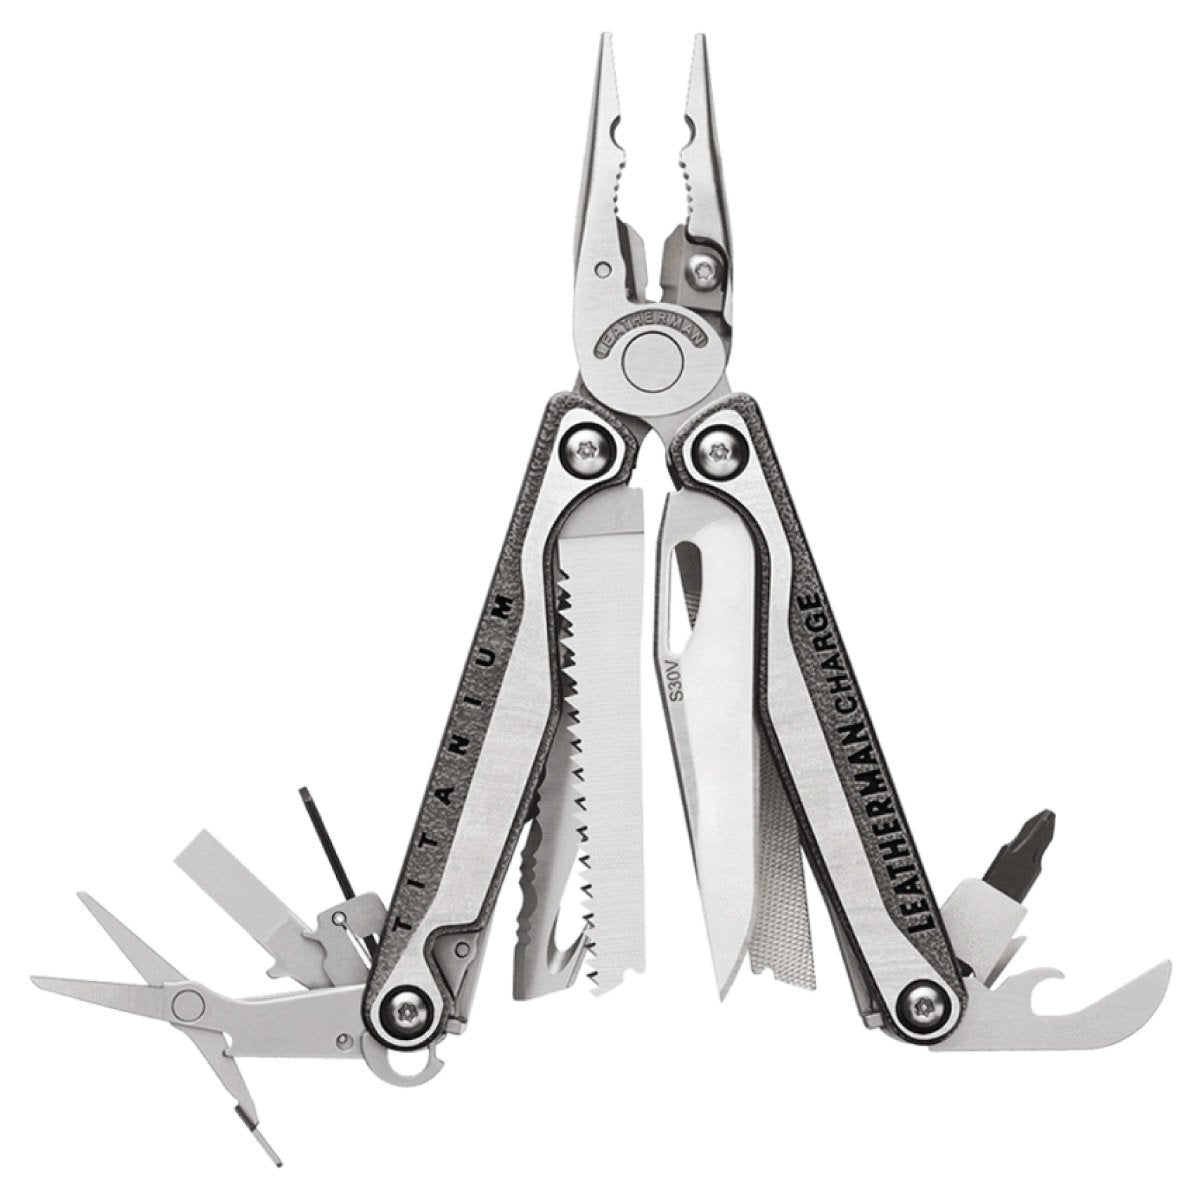 Leatherman Charge PLUS TTi Tactical Gear Australia Supplier Distributor Dealer